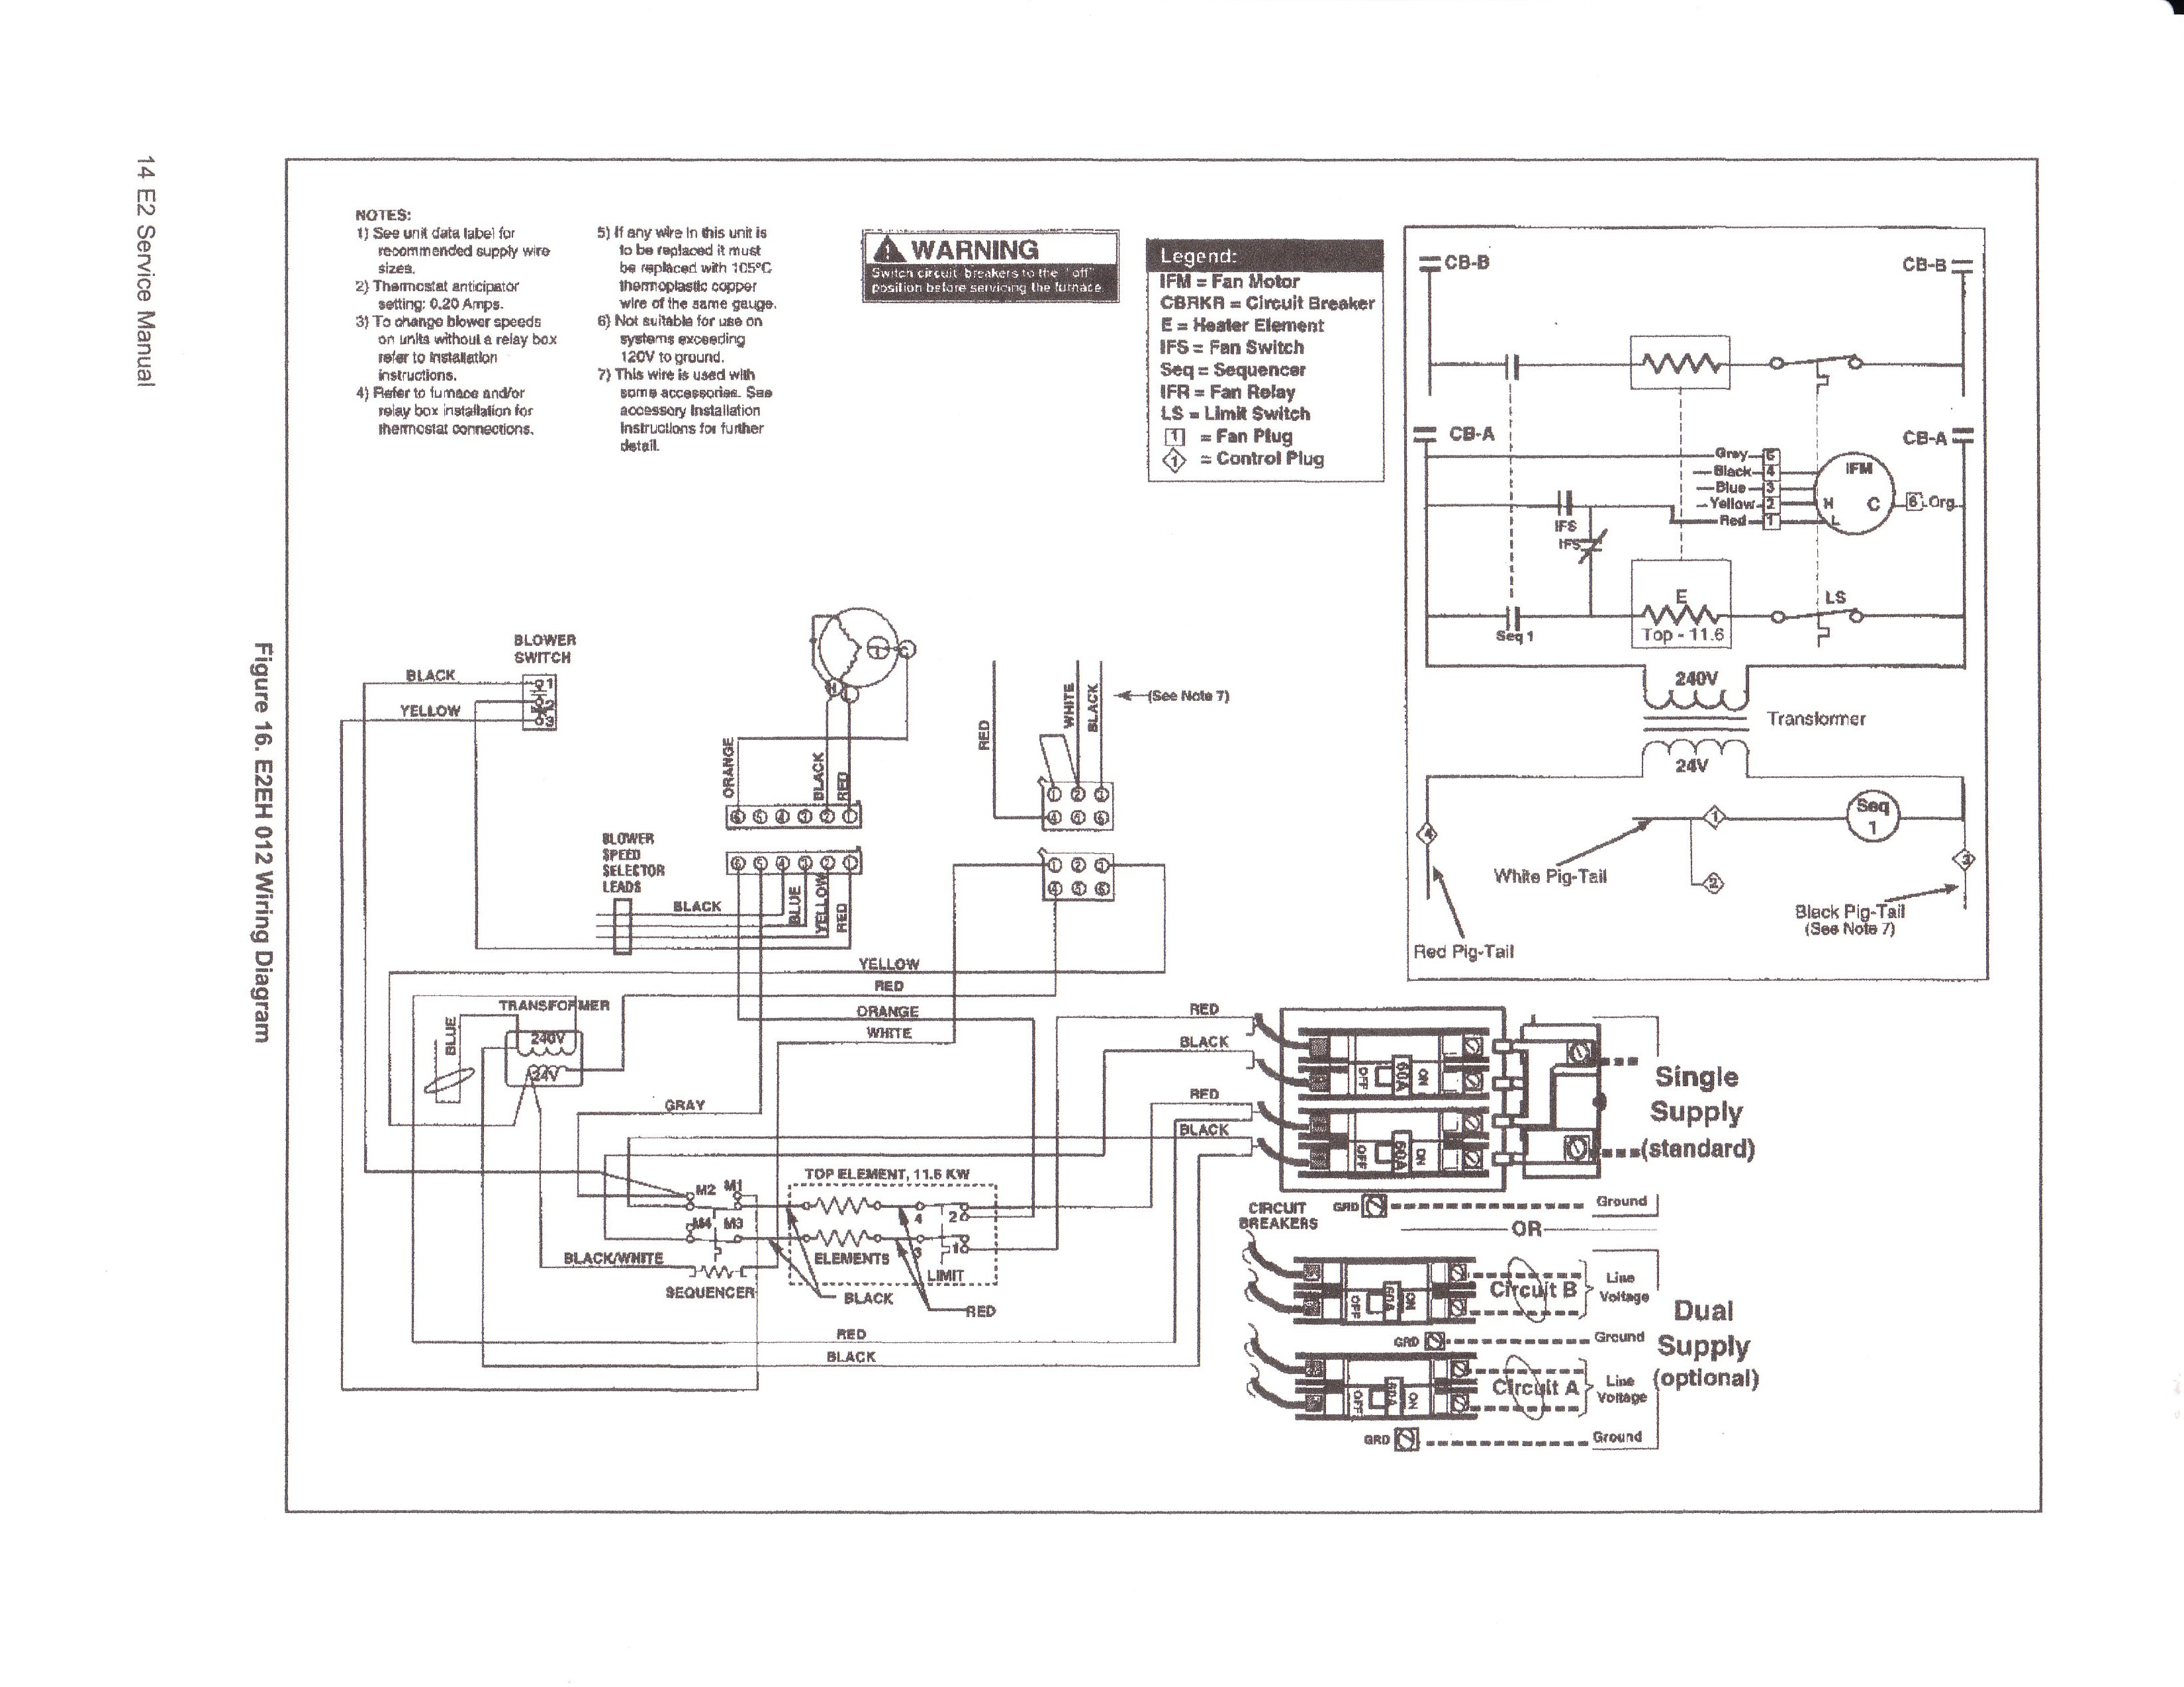 gas furnace wiring diagram pdf Collection-Basic Gas Furnace Wiring Diagram Pdf New 12-n